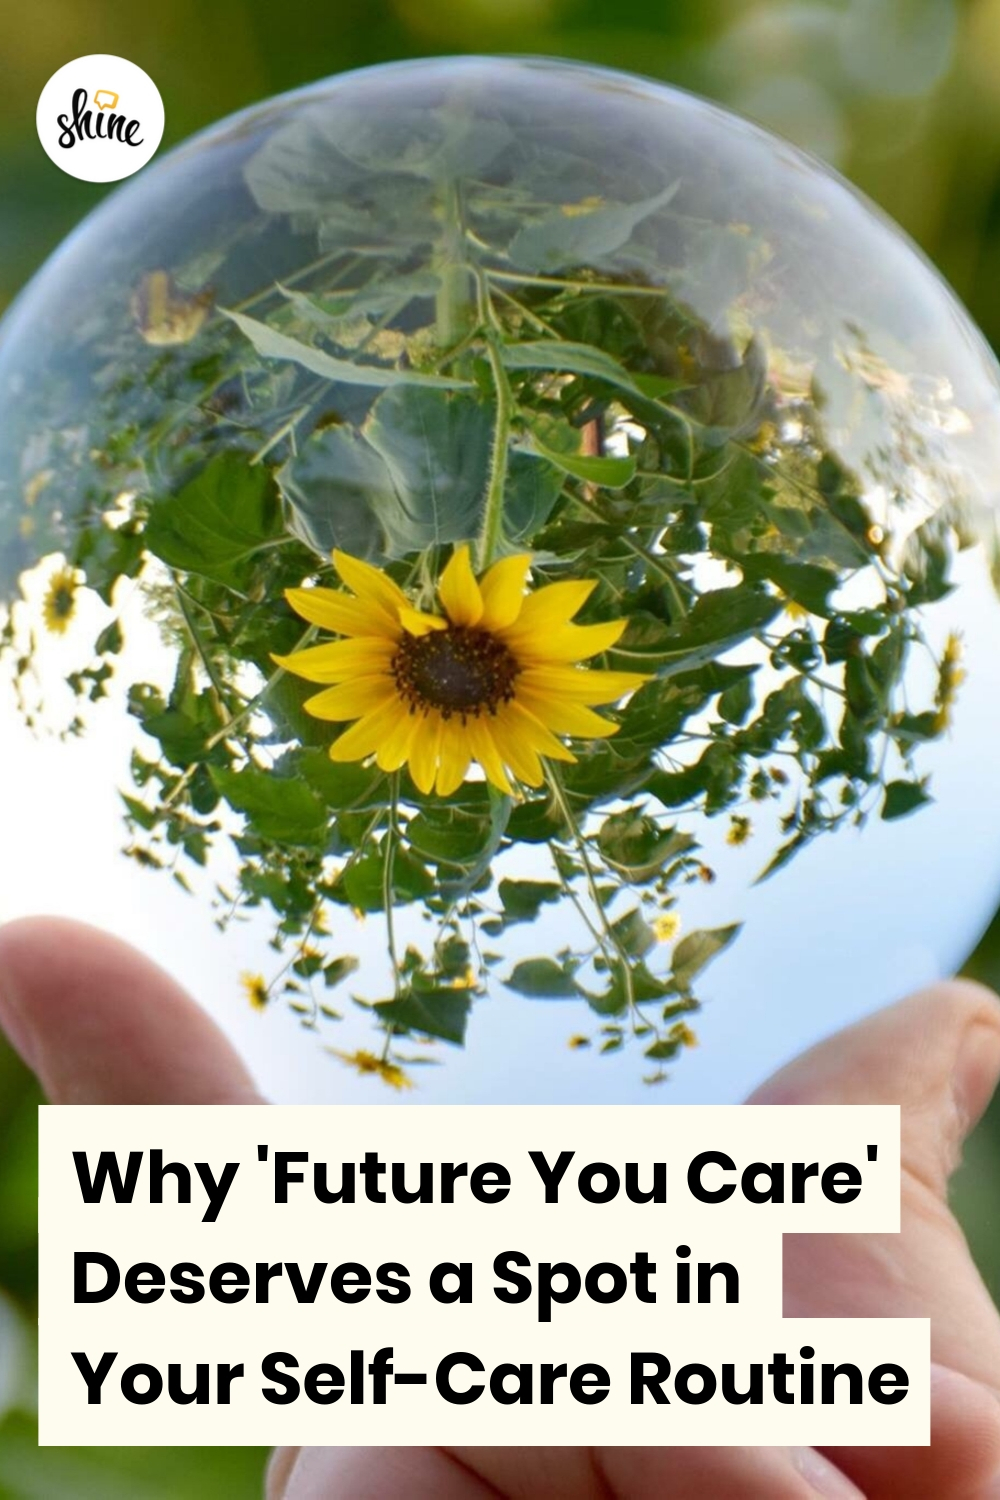 Future You Care